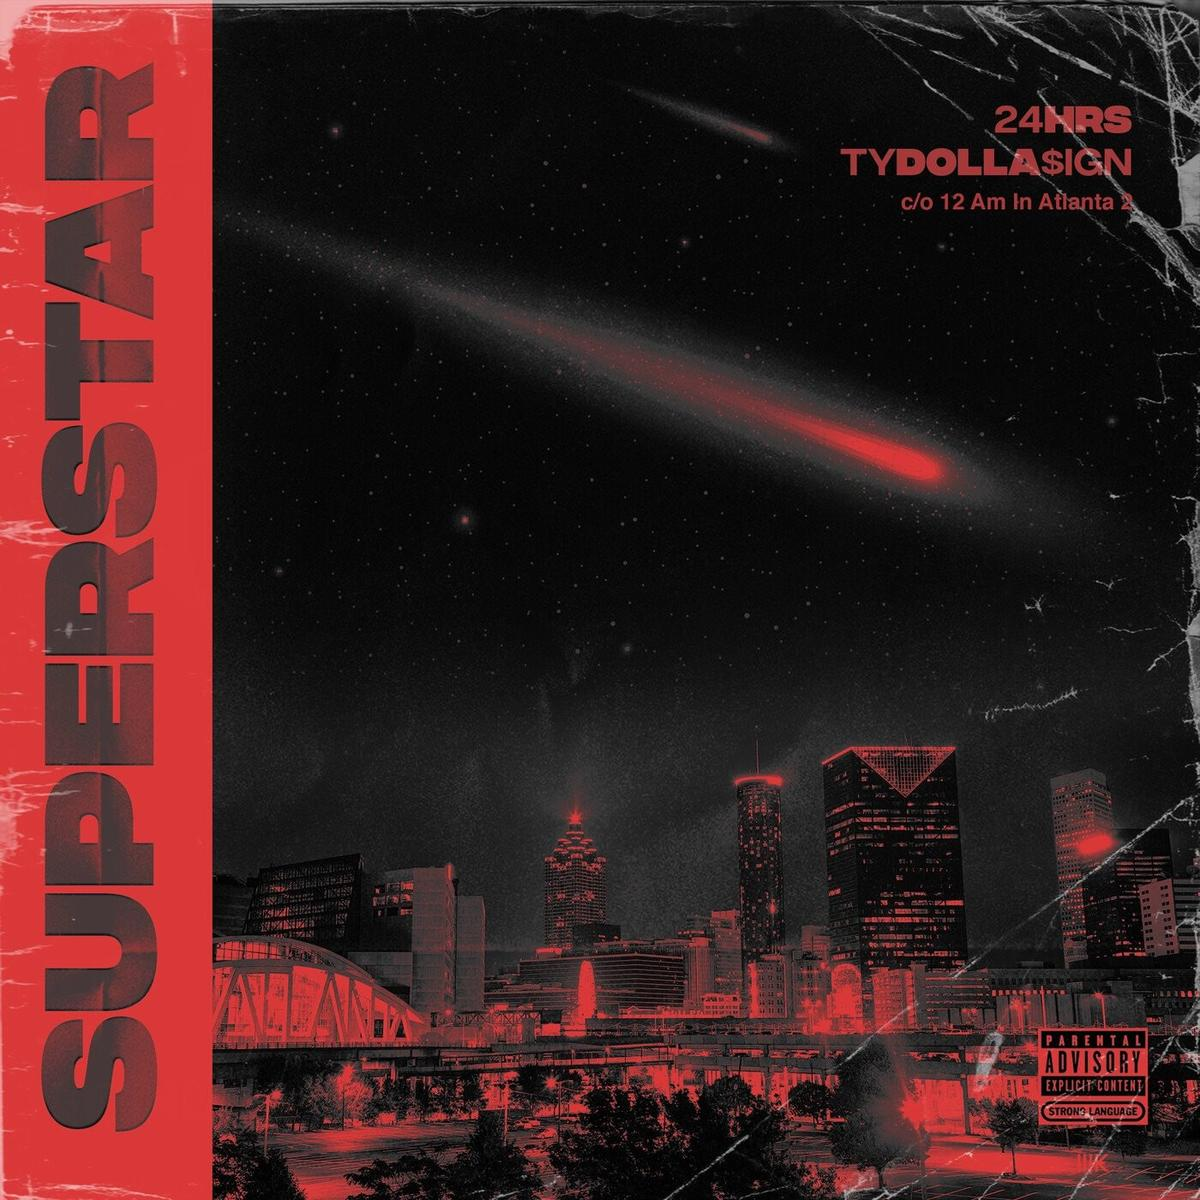 24hrs Ft. TY Dolla $ign - Superstar